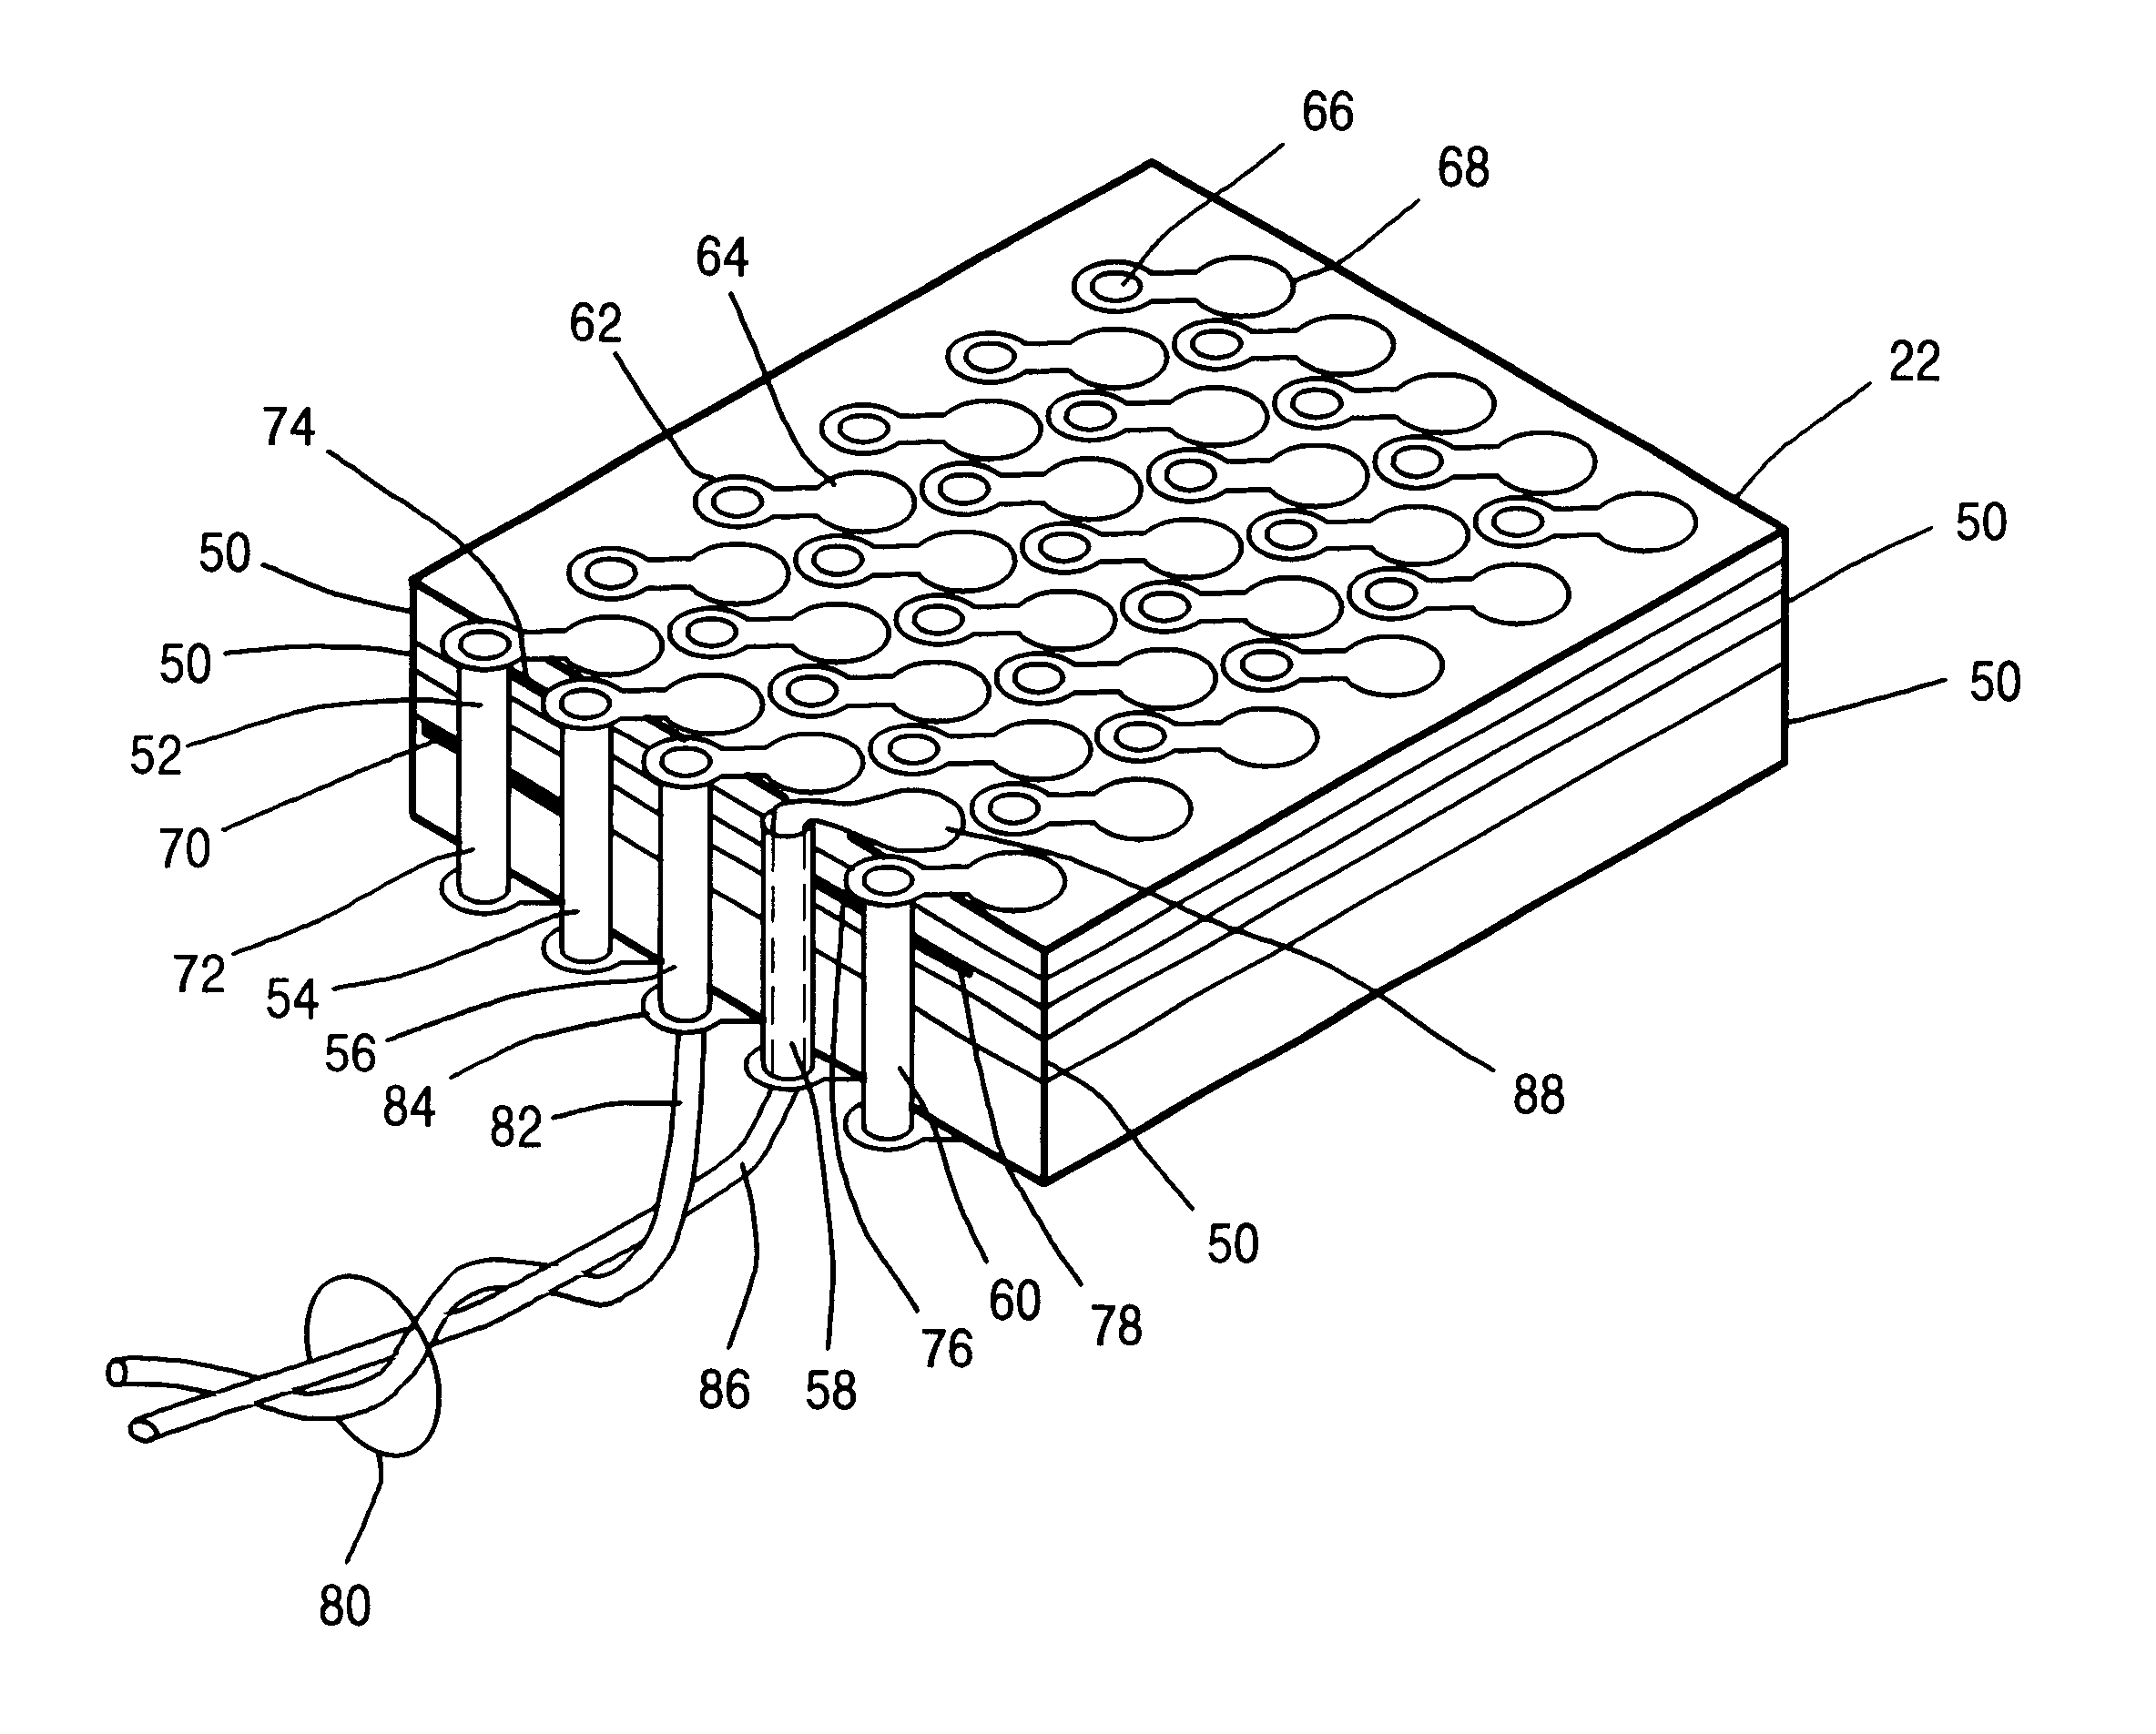 patent us6651322 - method of reworking a multilayer printed circuit board assembly